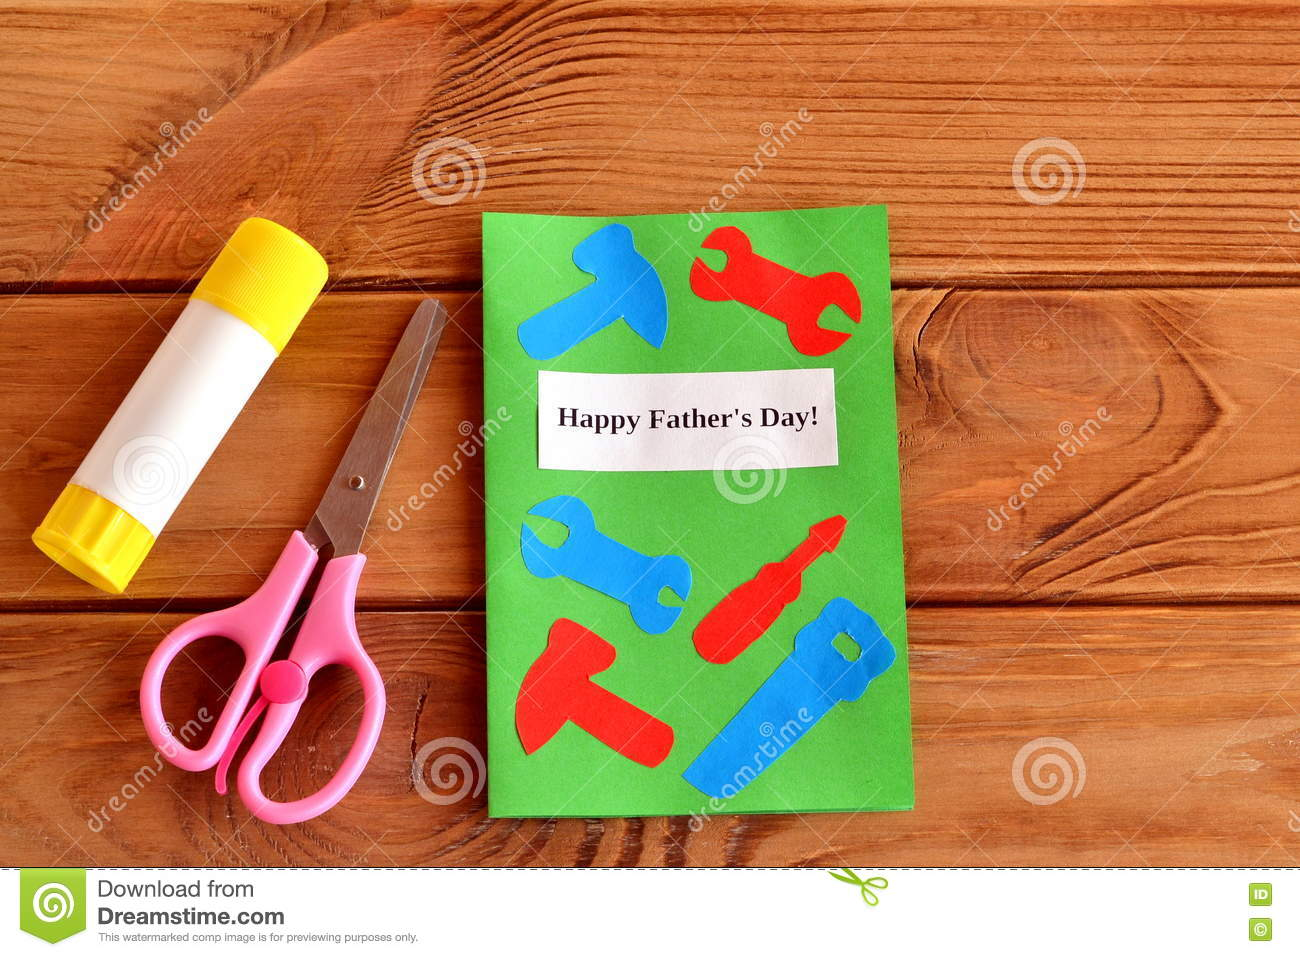 Happy fathers day greeting card with paper tools scissors glue greeting card with paper tools scissors glue kids paper m4hsunfo